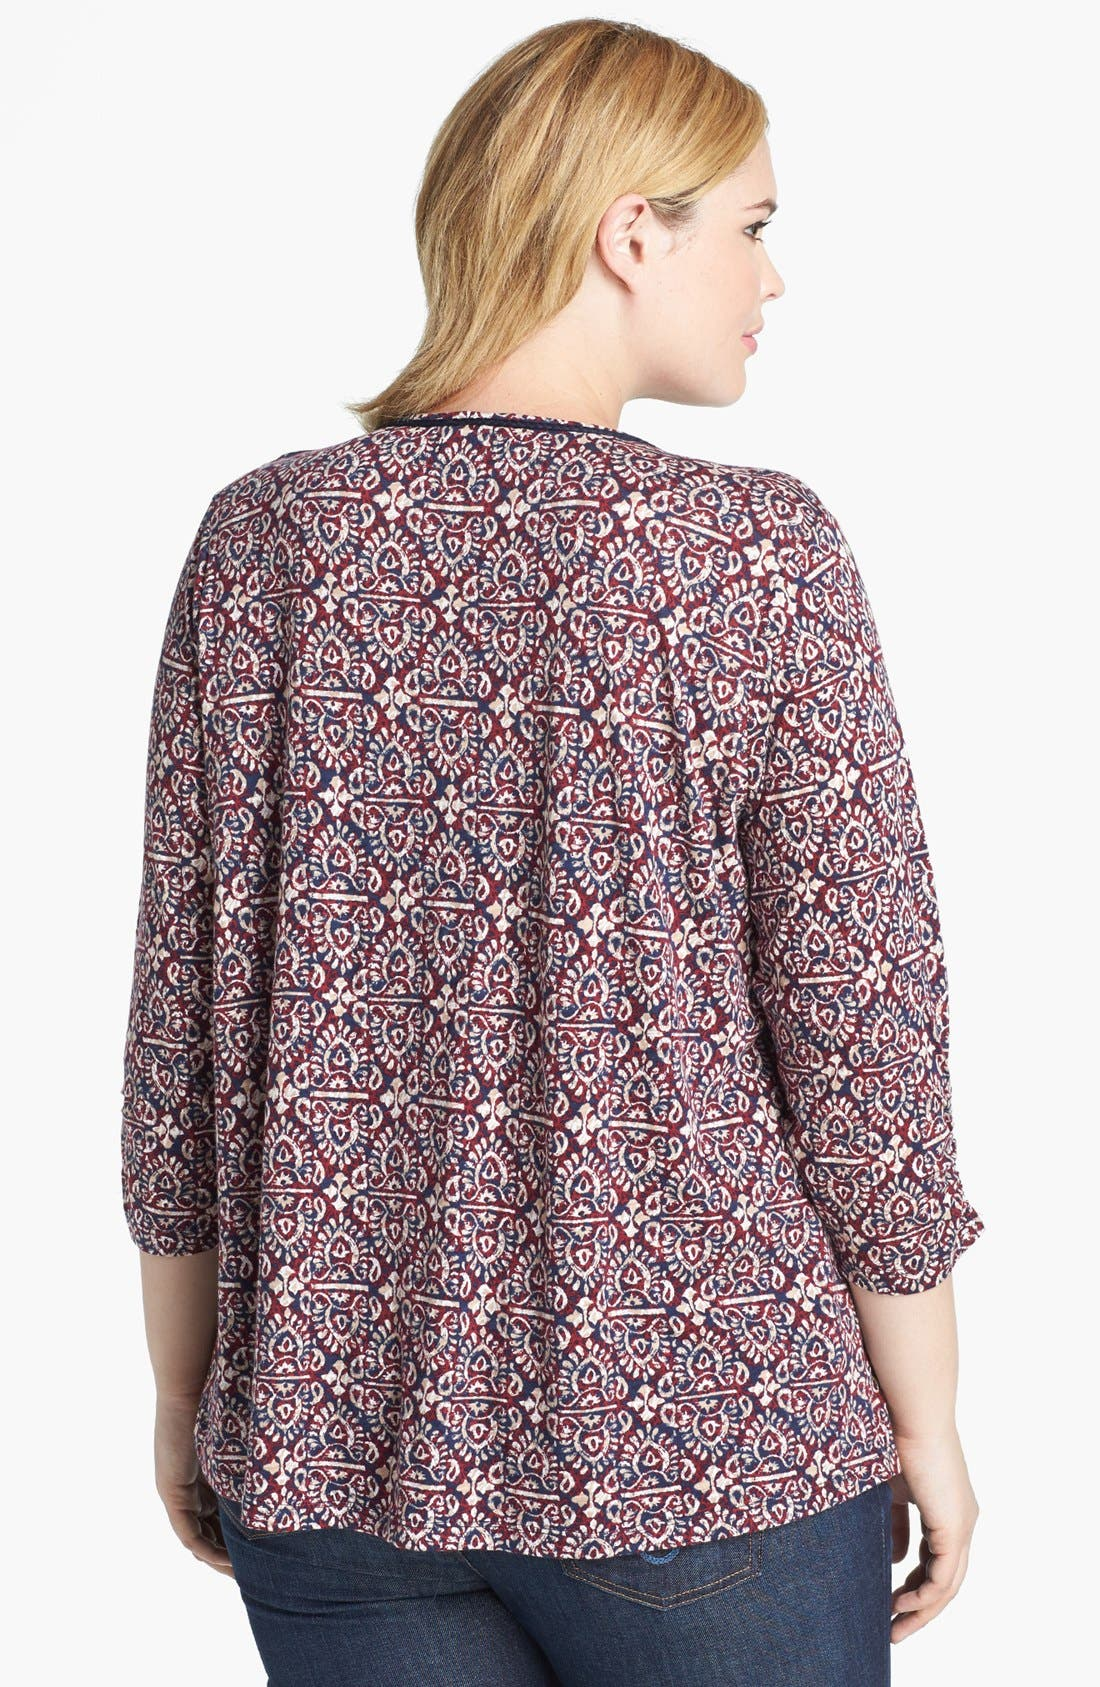 Alternate Image 2  - Lucky Brand 'Moroccan' Print Top (Plus Size)